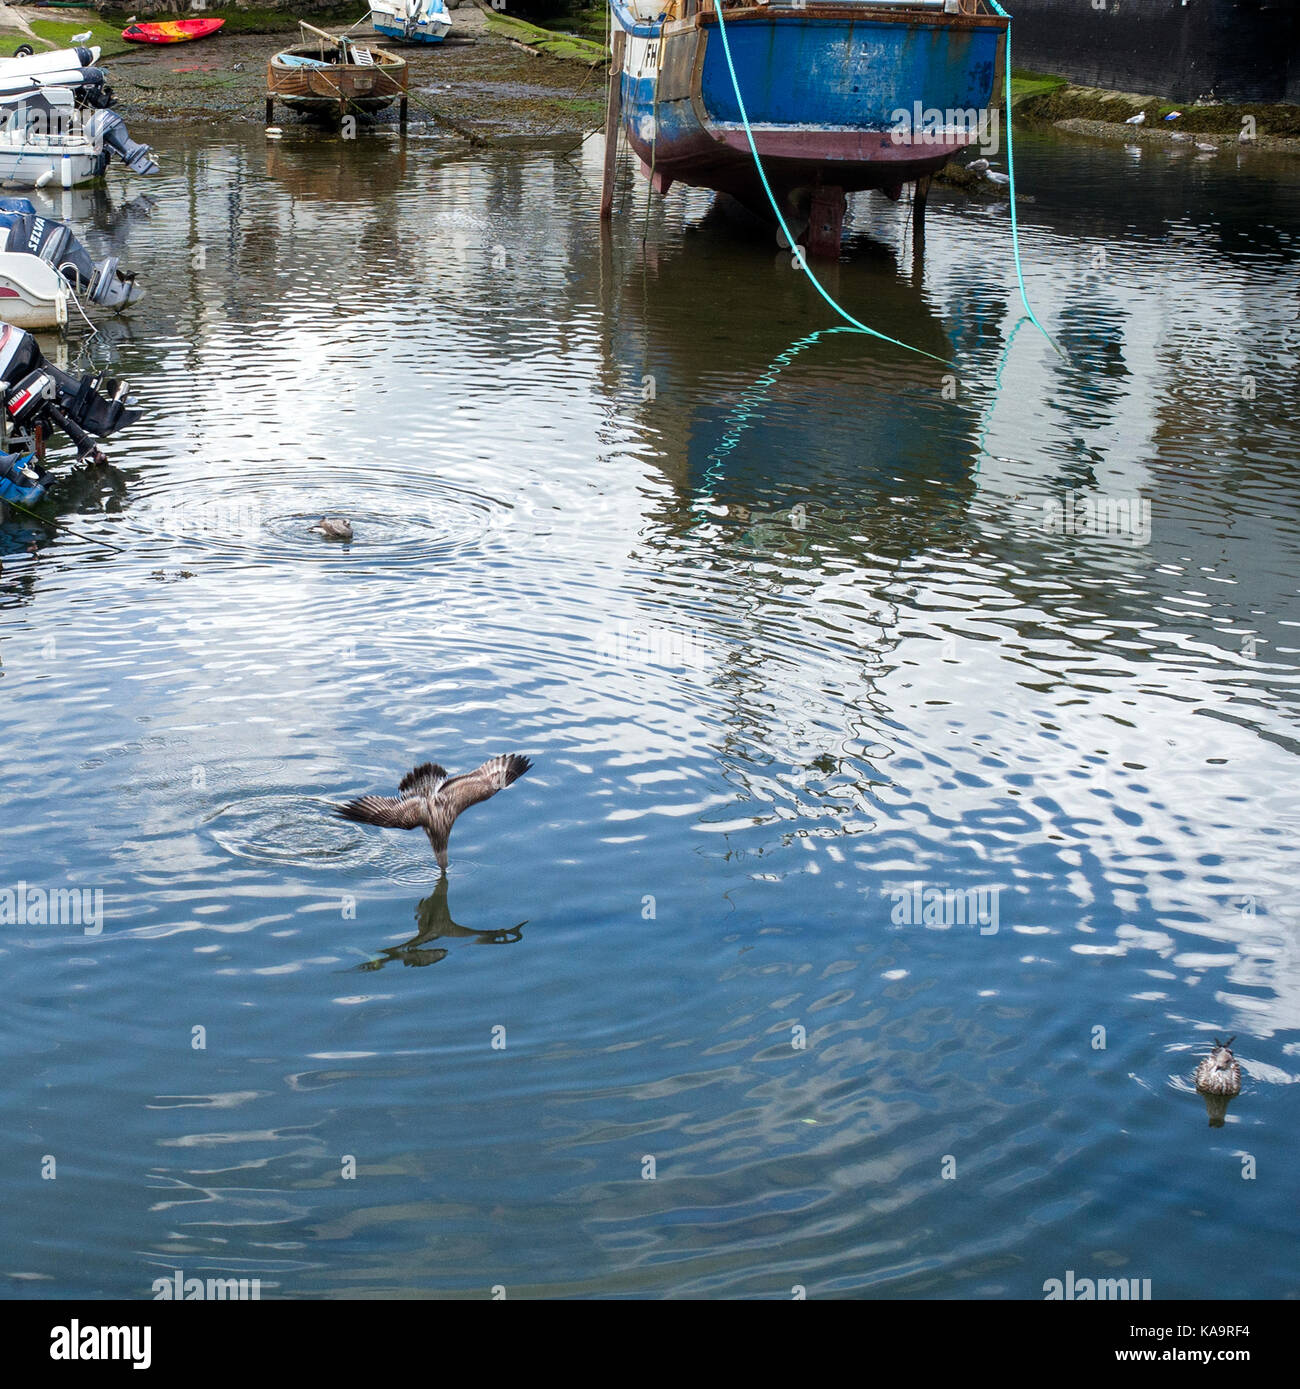 seagull diving into water trying to catch fish in cornish harbour - Stock Image